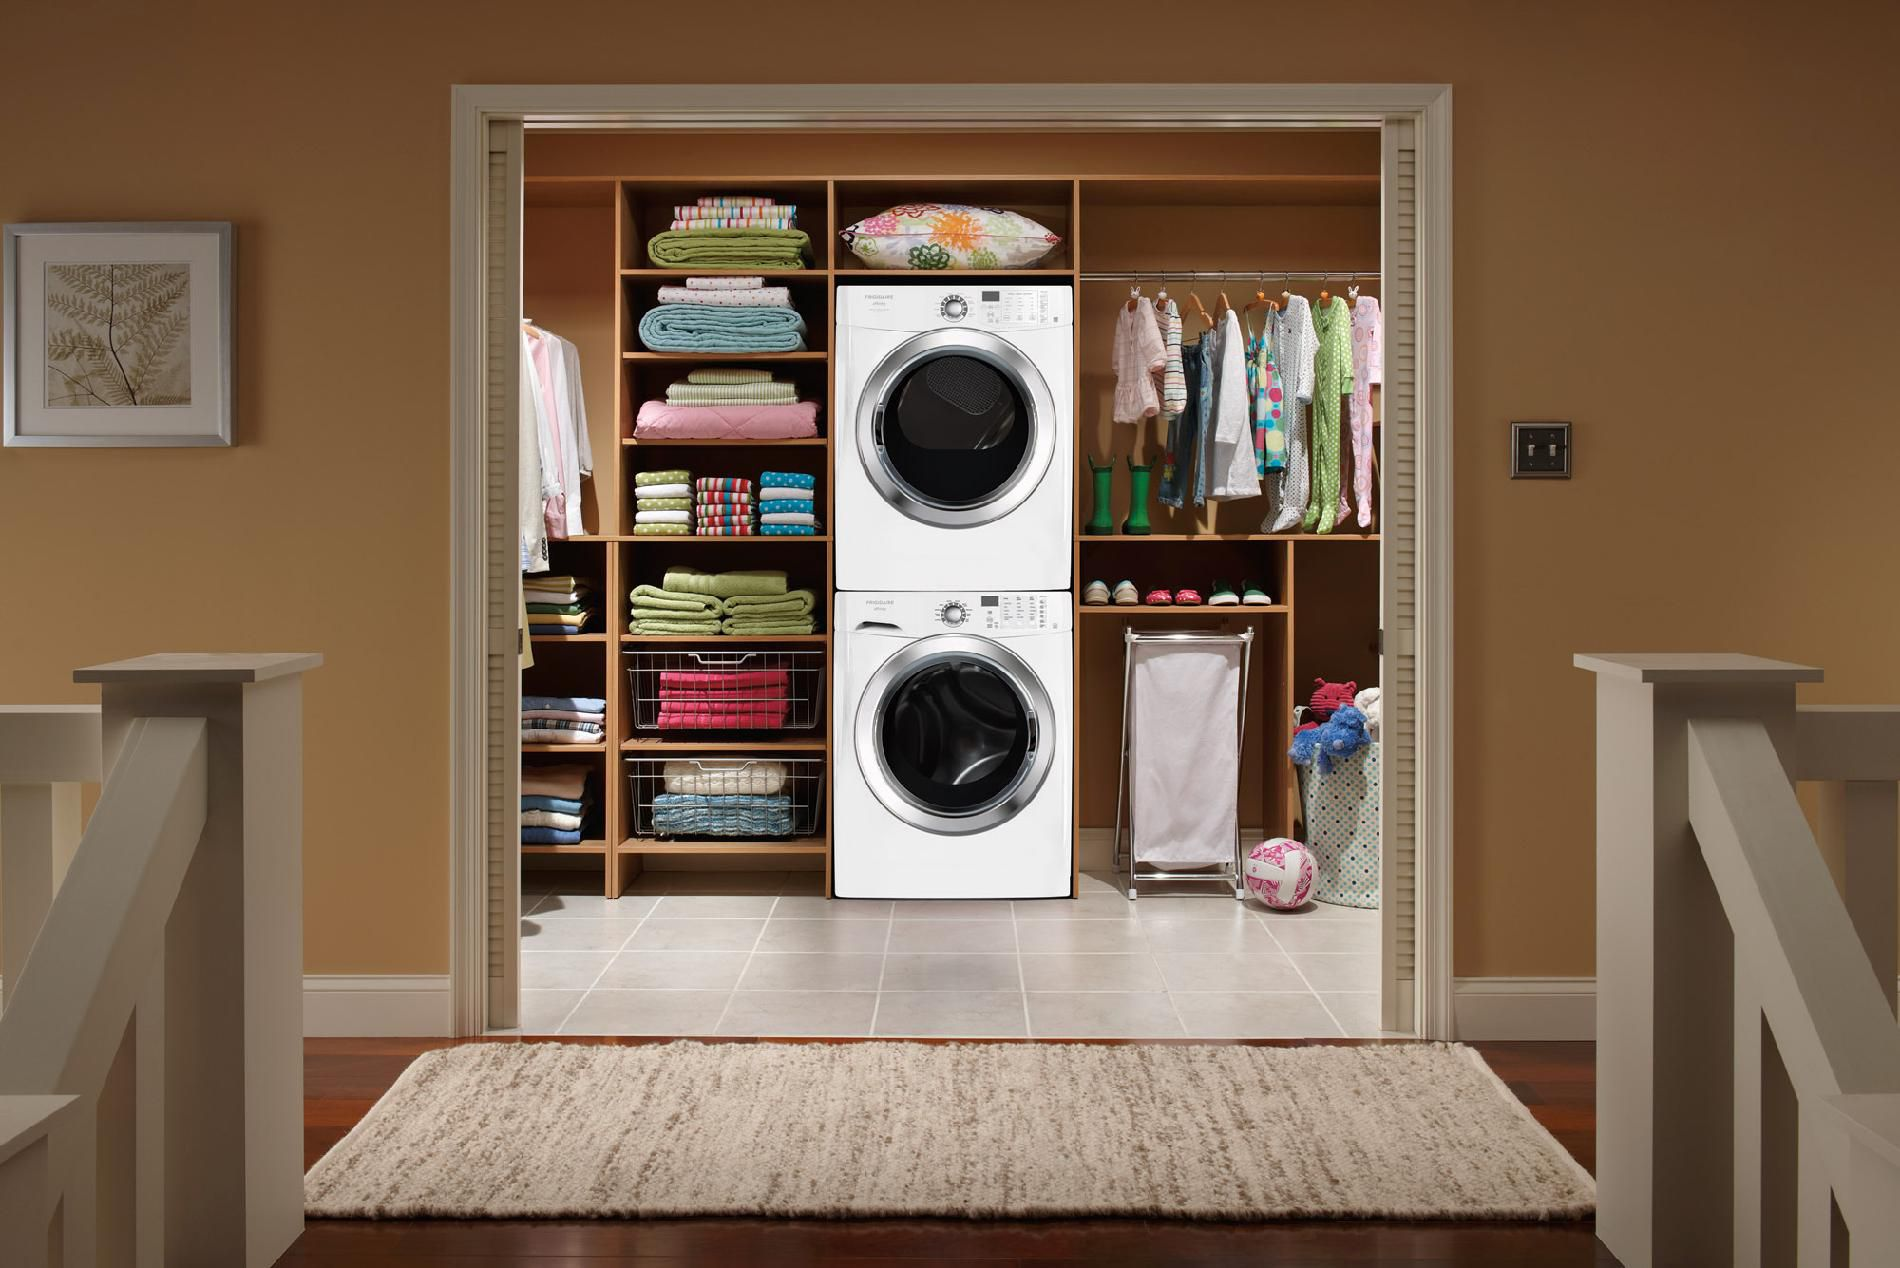 Frigidaire Affinity 7.0 cu. ft. Ready Steam™ Electric Dryer w/ 6 Specialty Cycles - Classic White